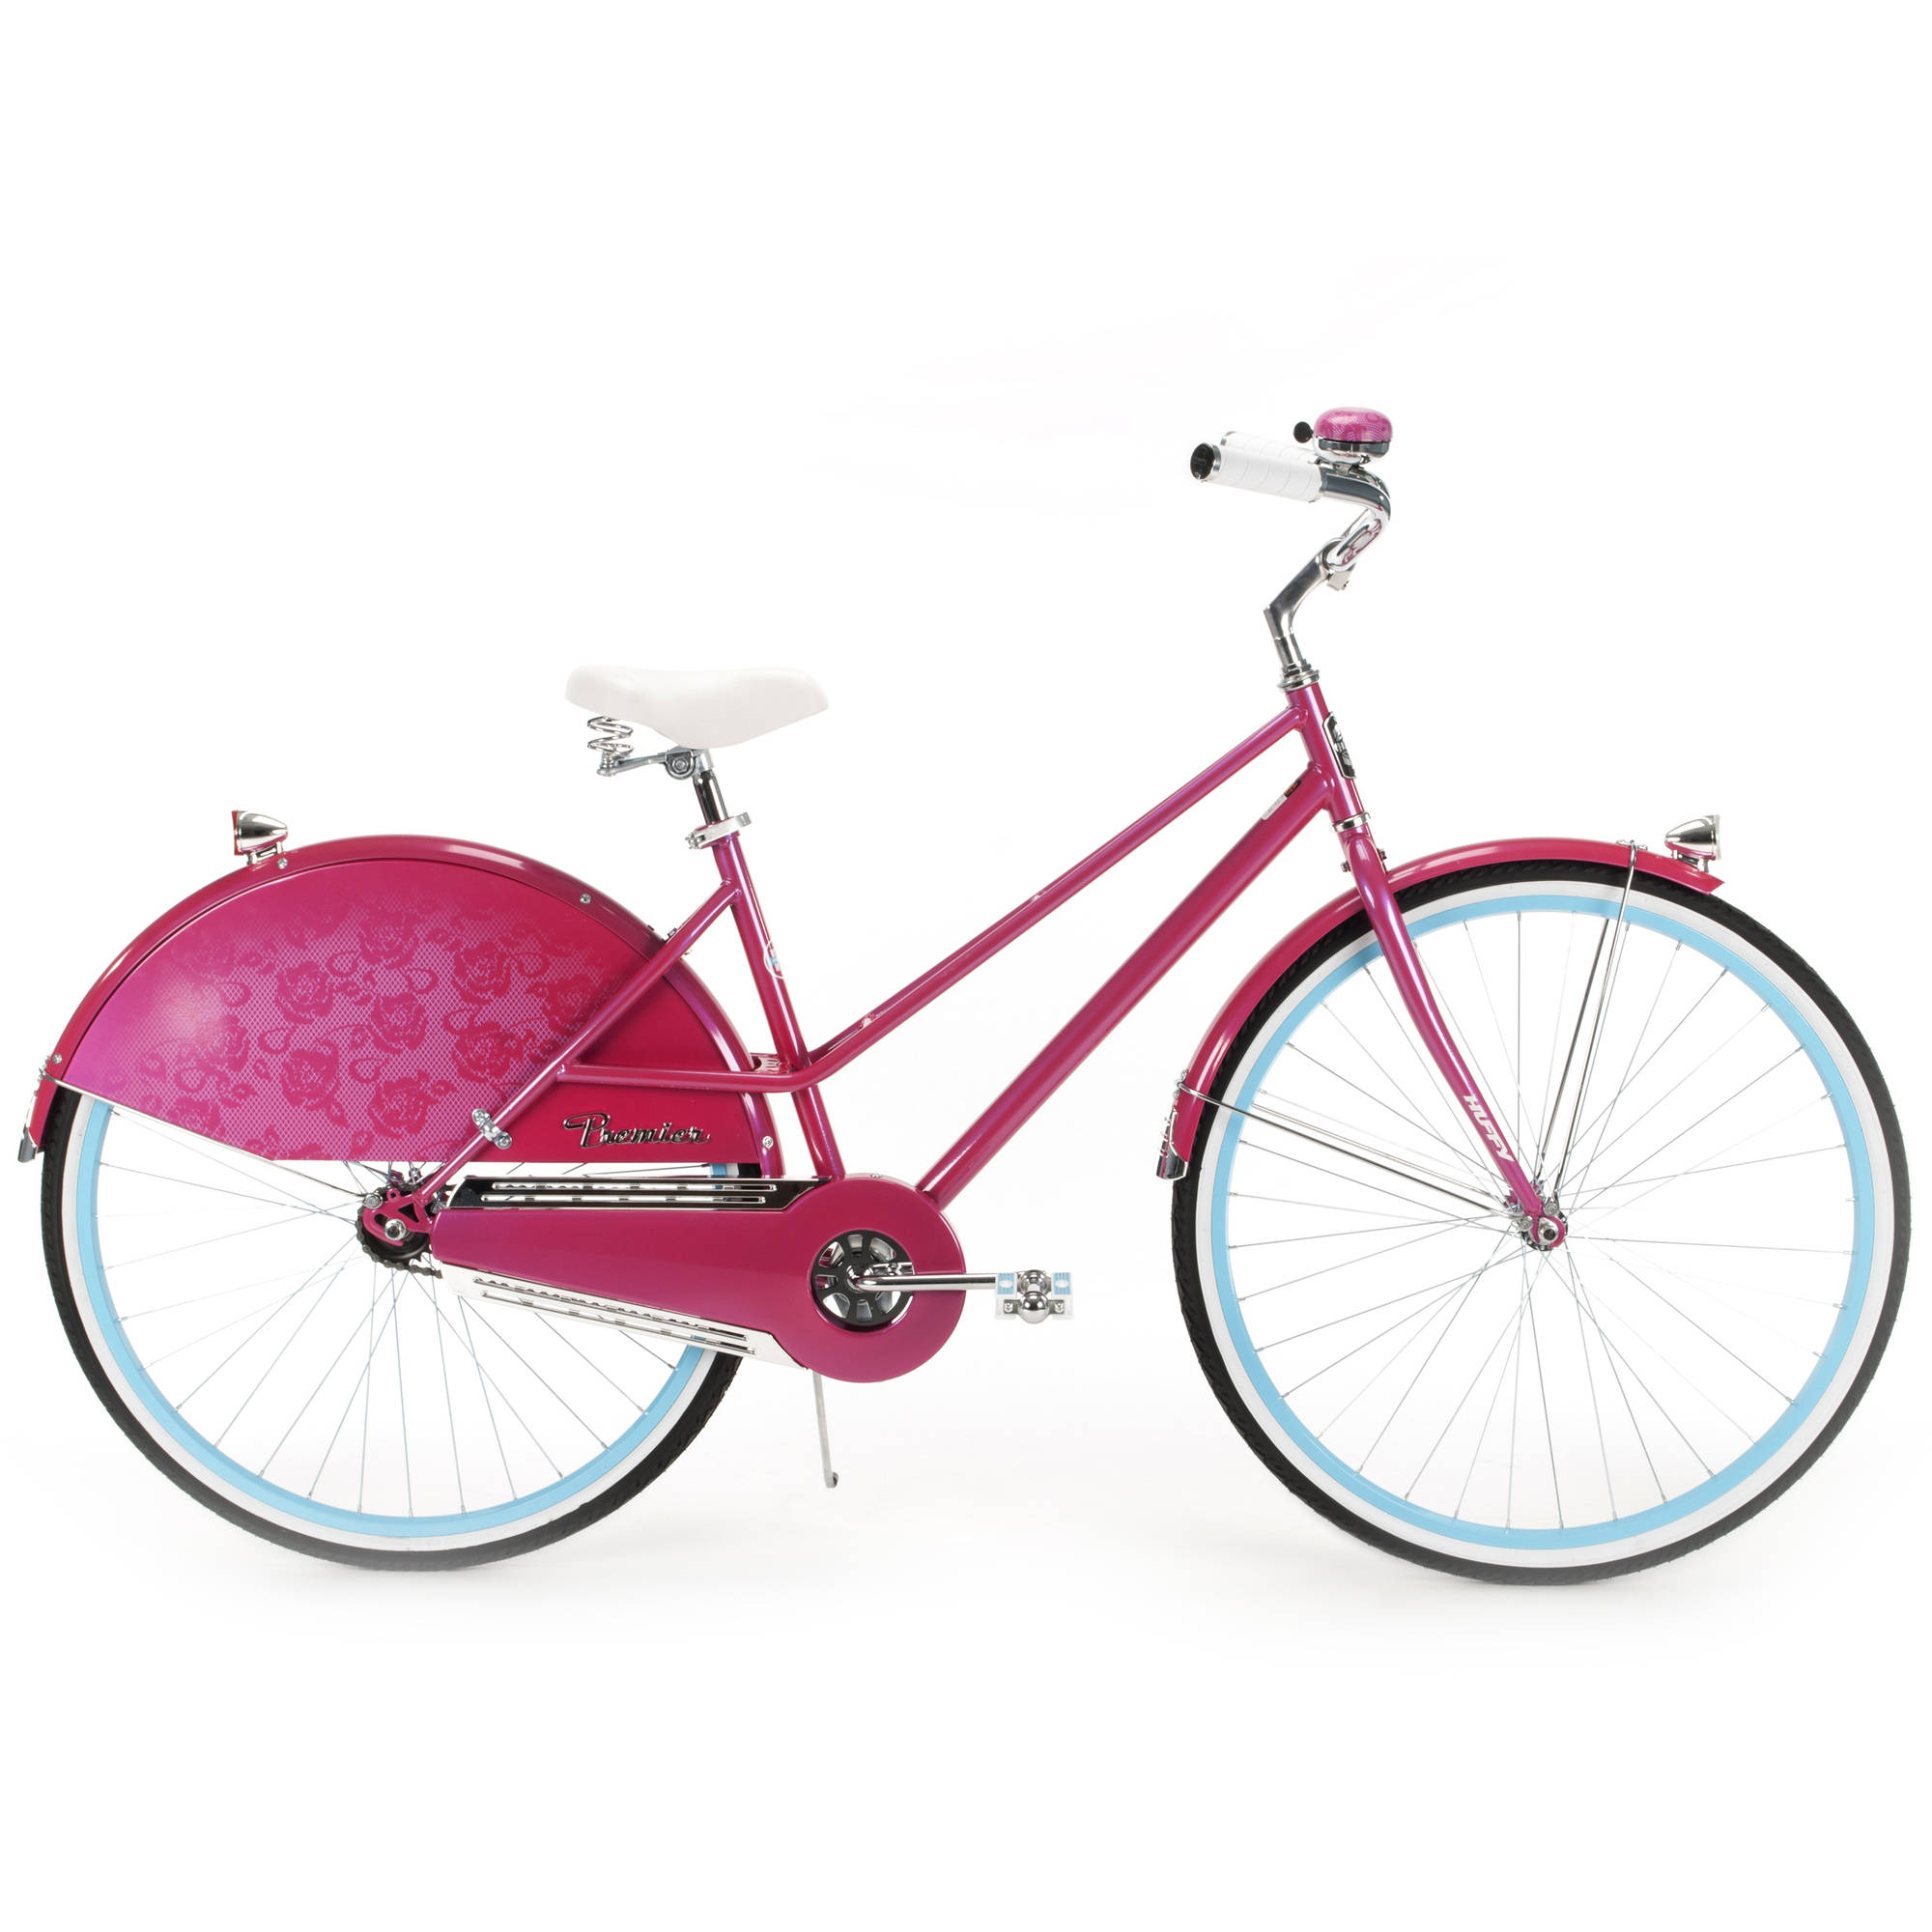 700c Huffy Premier Women's Cruiser Bike, Pink